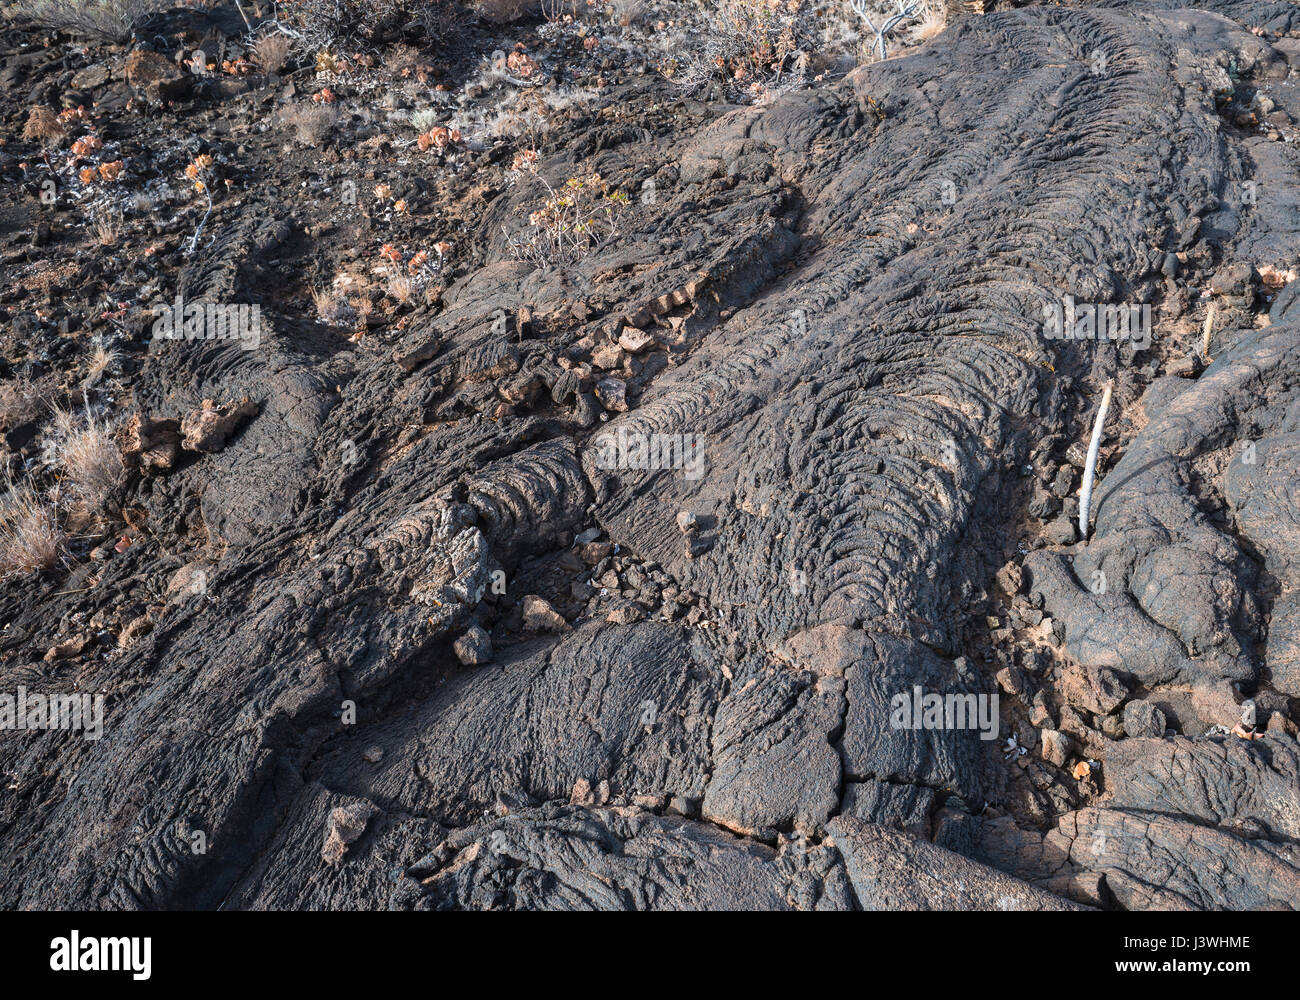 Basaltic lava flows with pahoehoe or ropy textures at Tacoron on the south coast of El Hierro, Canary Islands - Stock Image